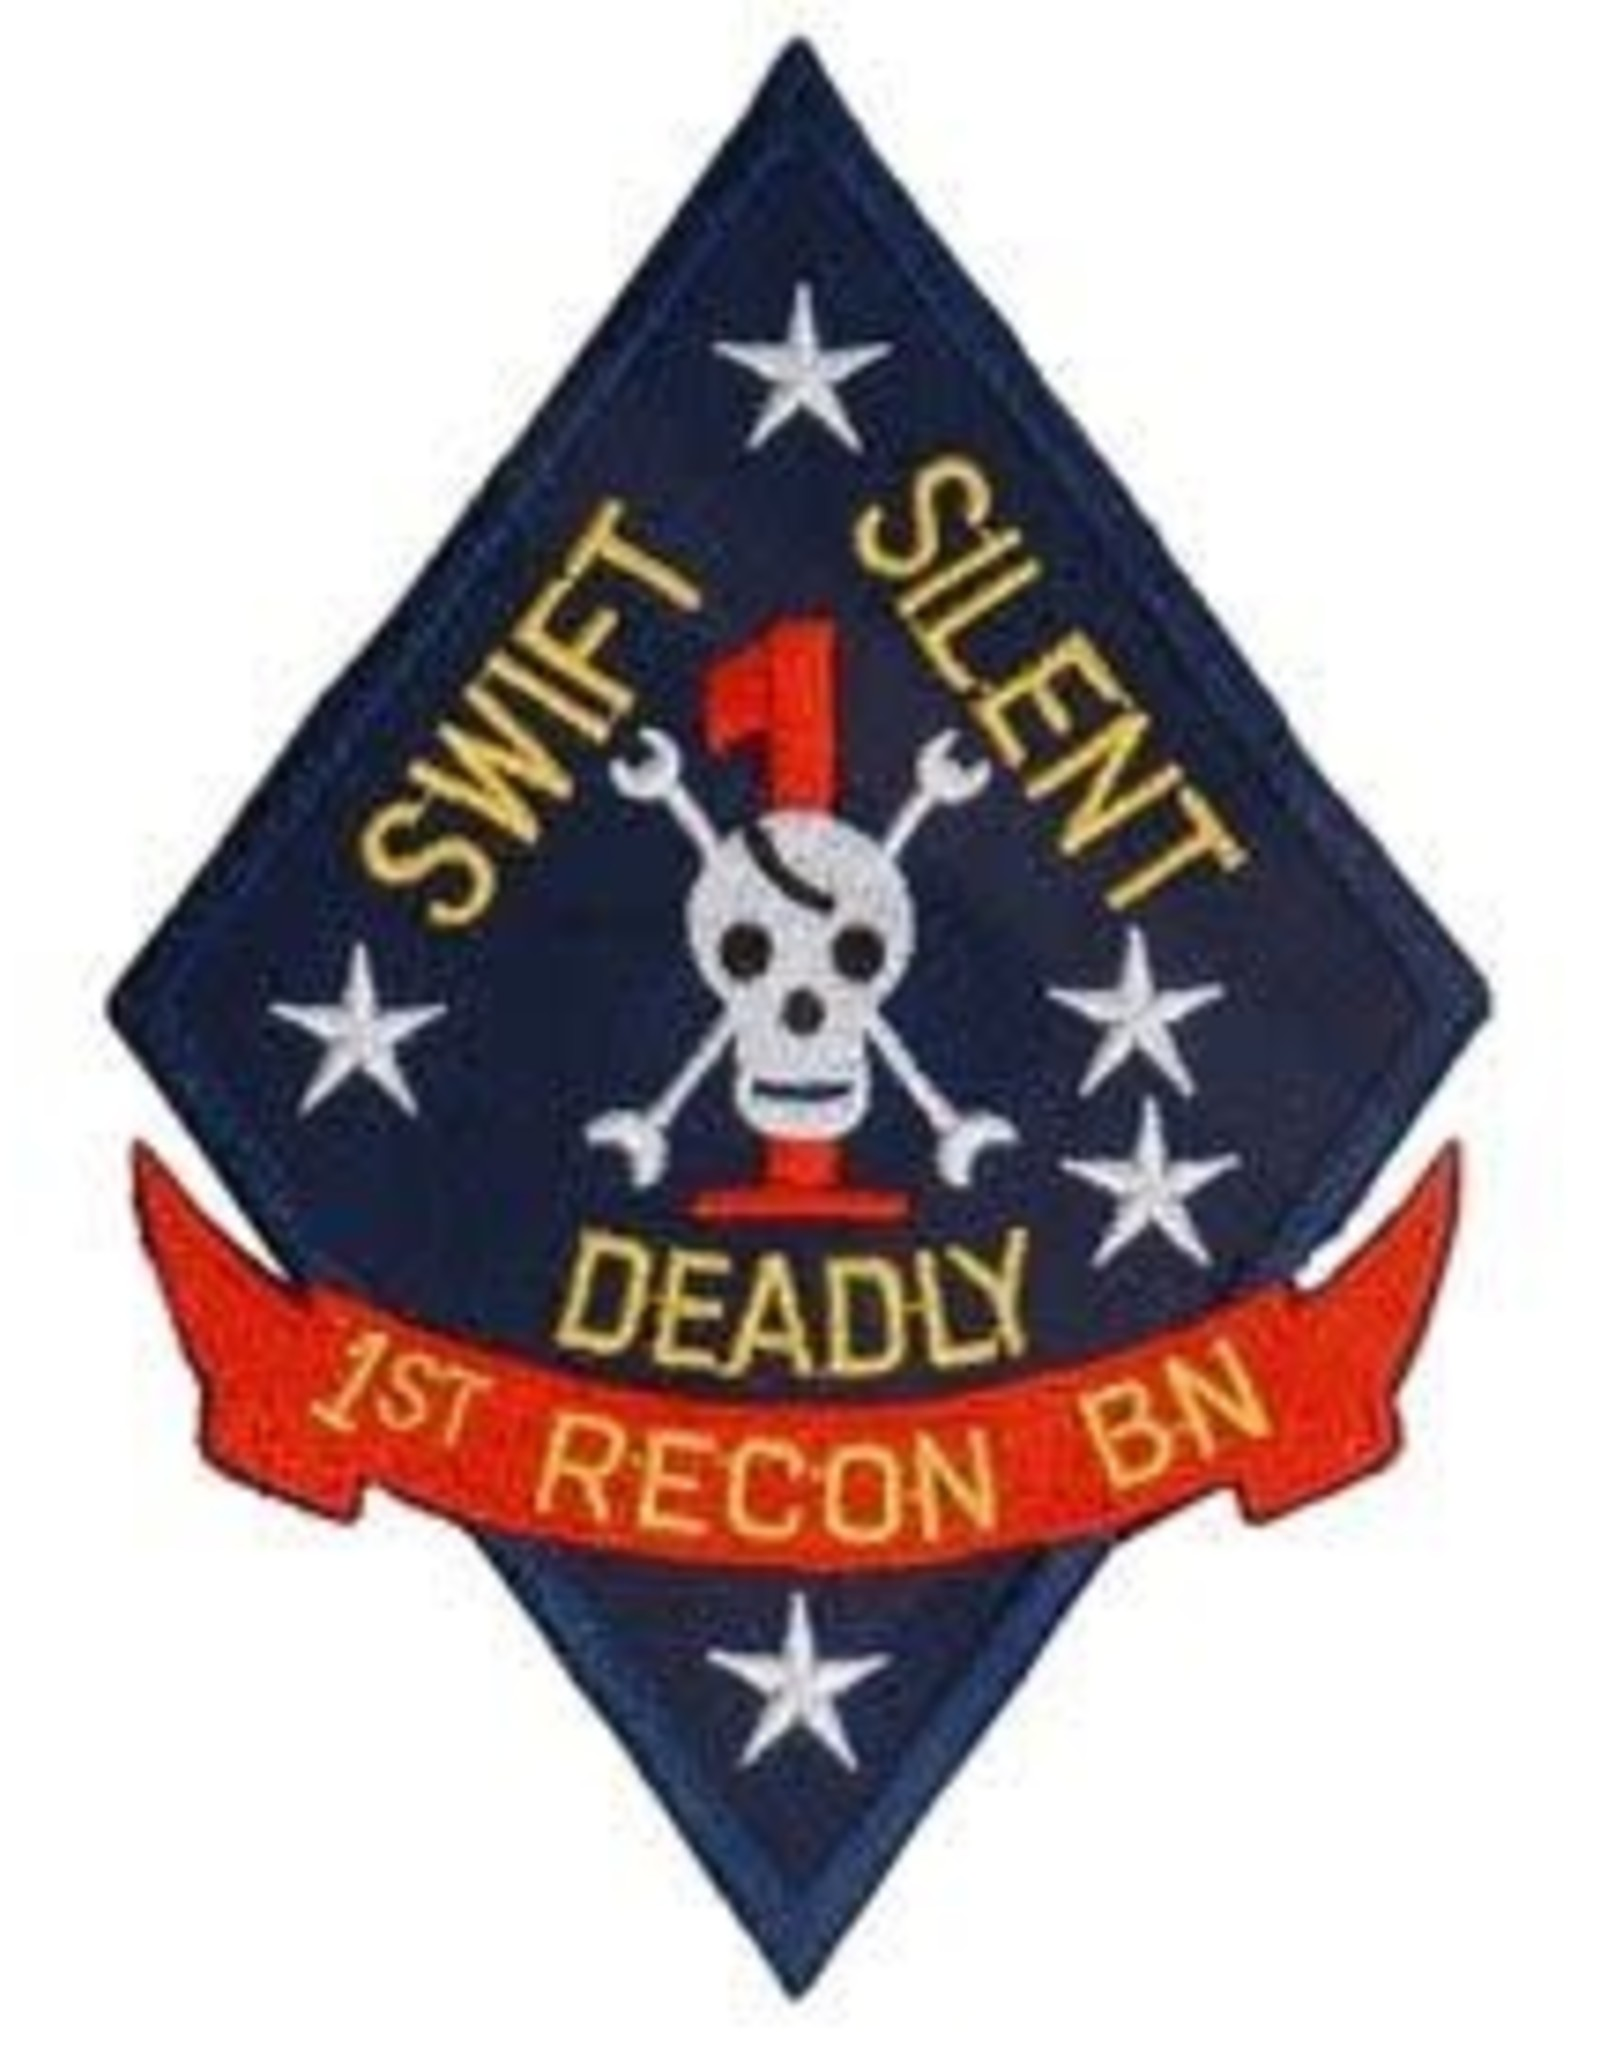 "MidMil Embroidered Marine 1st Recon Bn Emblem 3"" wide x 4.4"" high"